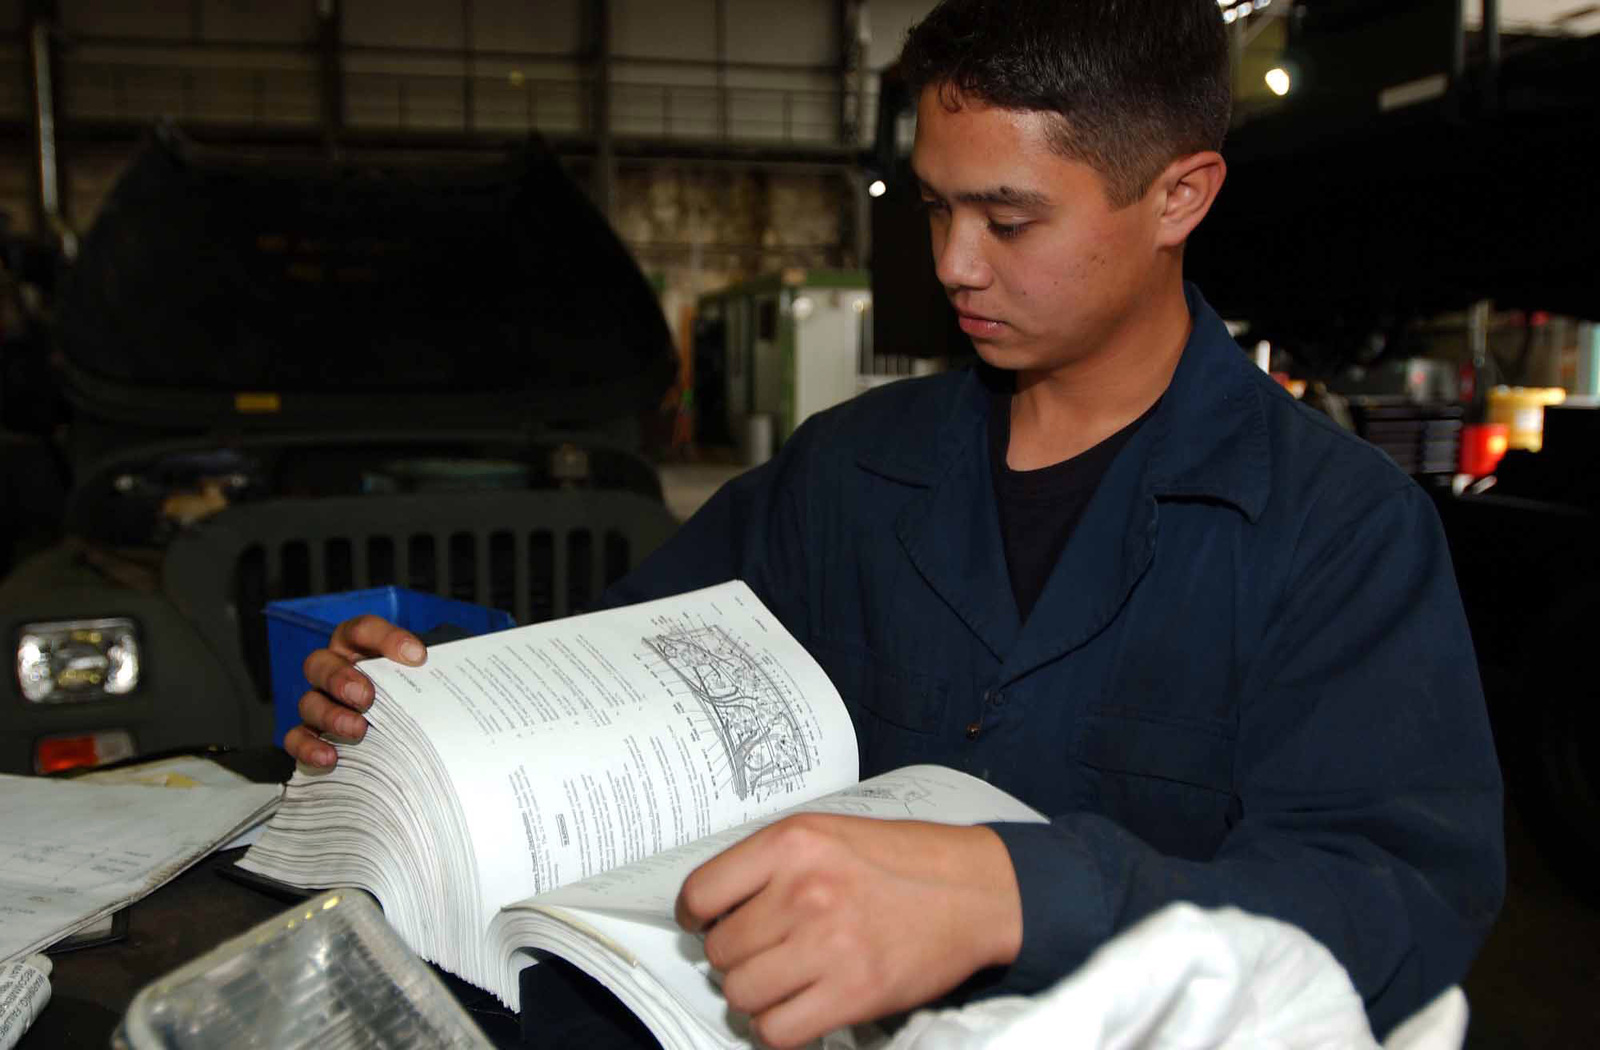 US Air Force (USAF) AIRMAN First Class (A1C) Charles Pichelmeyer, a Special Purpose Vehicle & Equipment Maintenance Apprentice, with the 31st Logistics Readiness Squadron (LRS), reads the Operator Maintenance Instructions prior to performing maintenance on a transportation vehicle